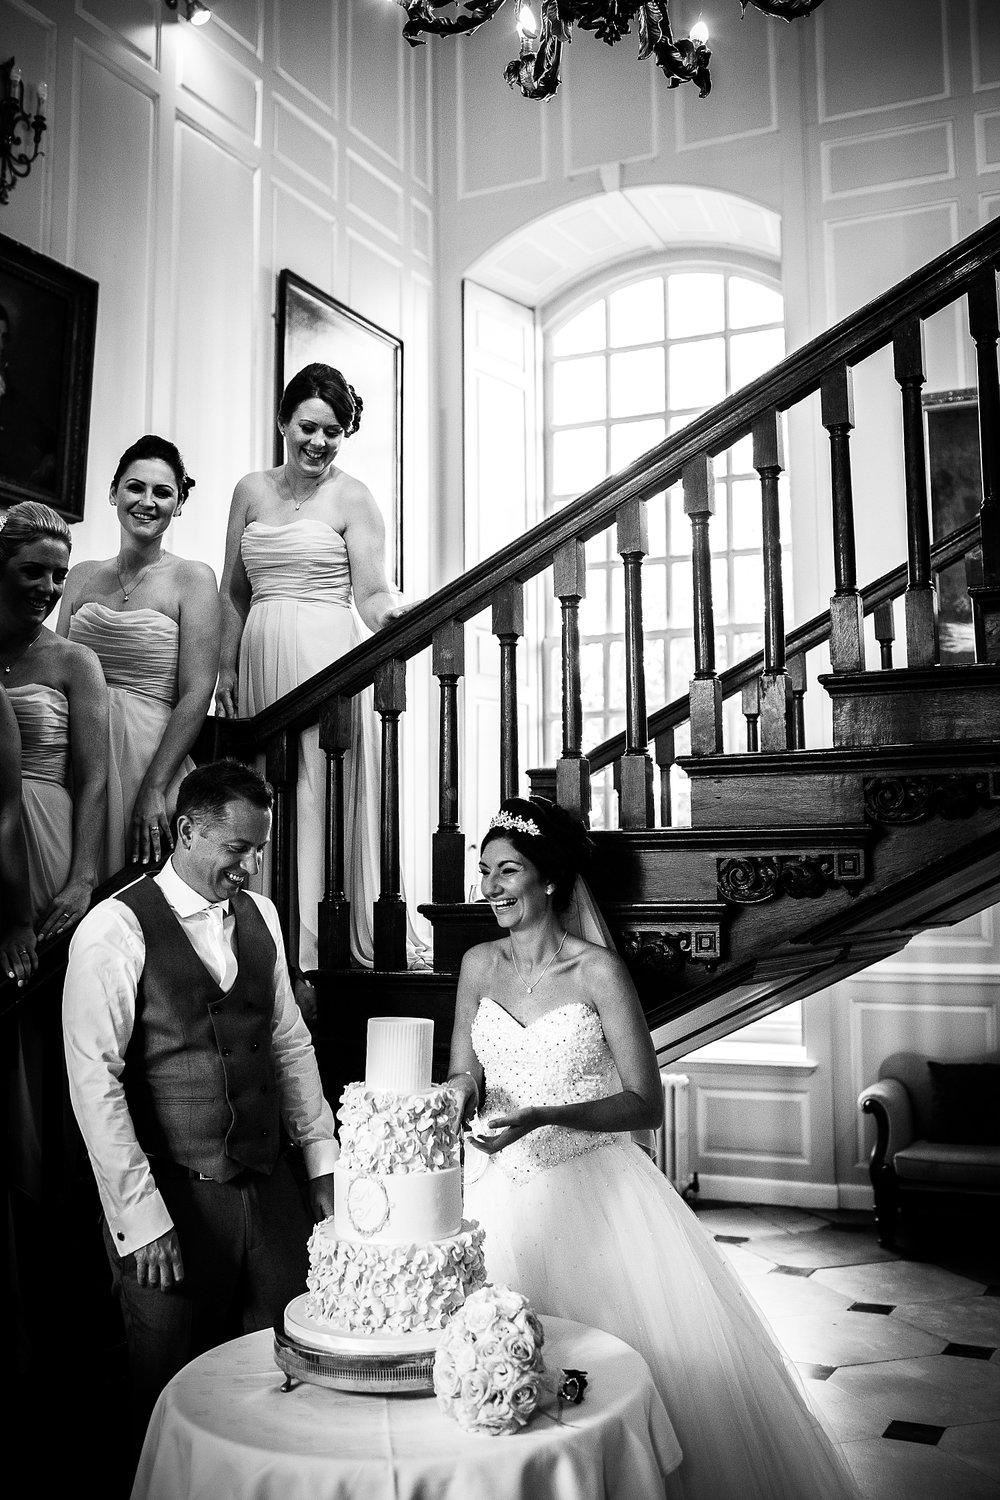 Gosfield Hall Wedding - Cake Cutting